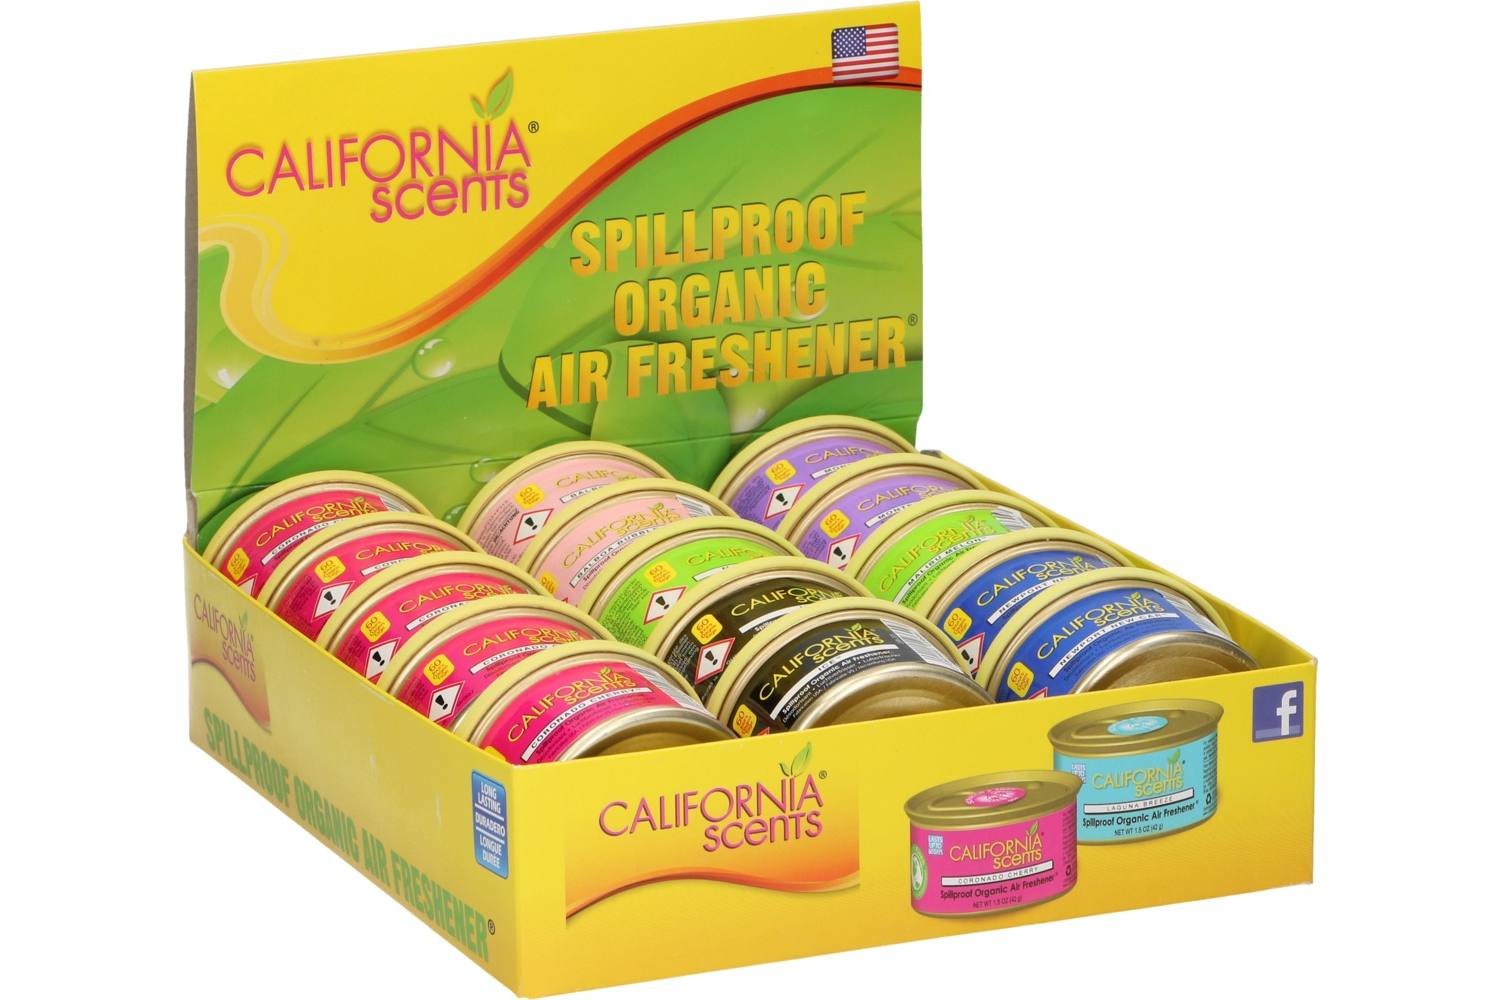 Display, California Scents, Air freshener, counter, 15 pieces 1